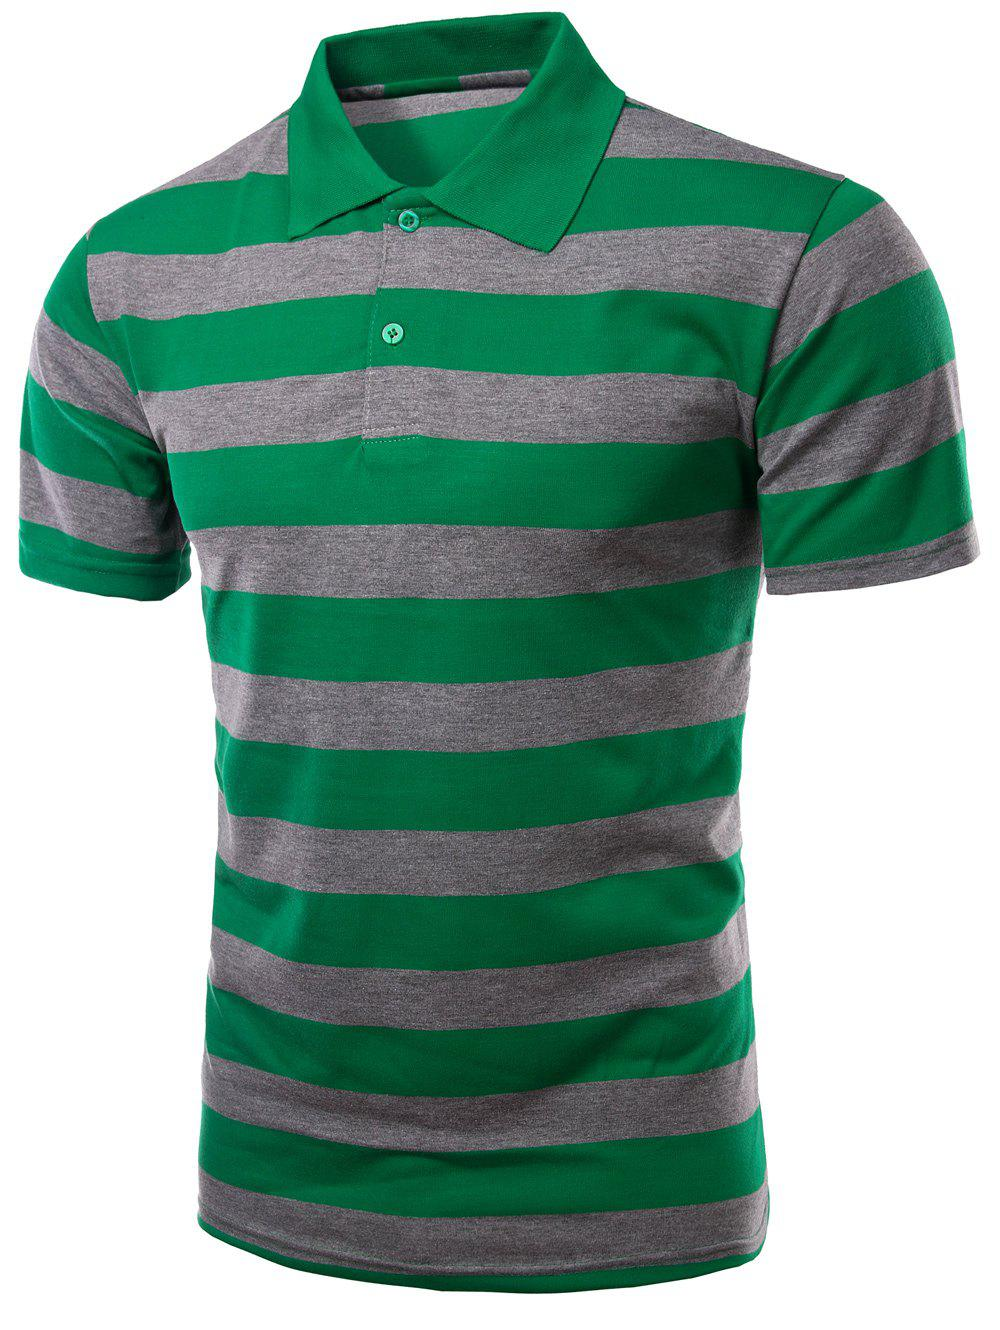 Men's Stripes Turn-down Collar Short Sleeves Polo T-Shirt - GREEN XL